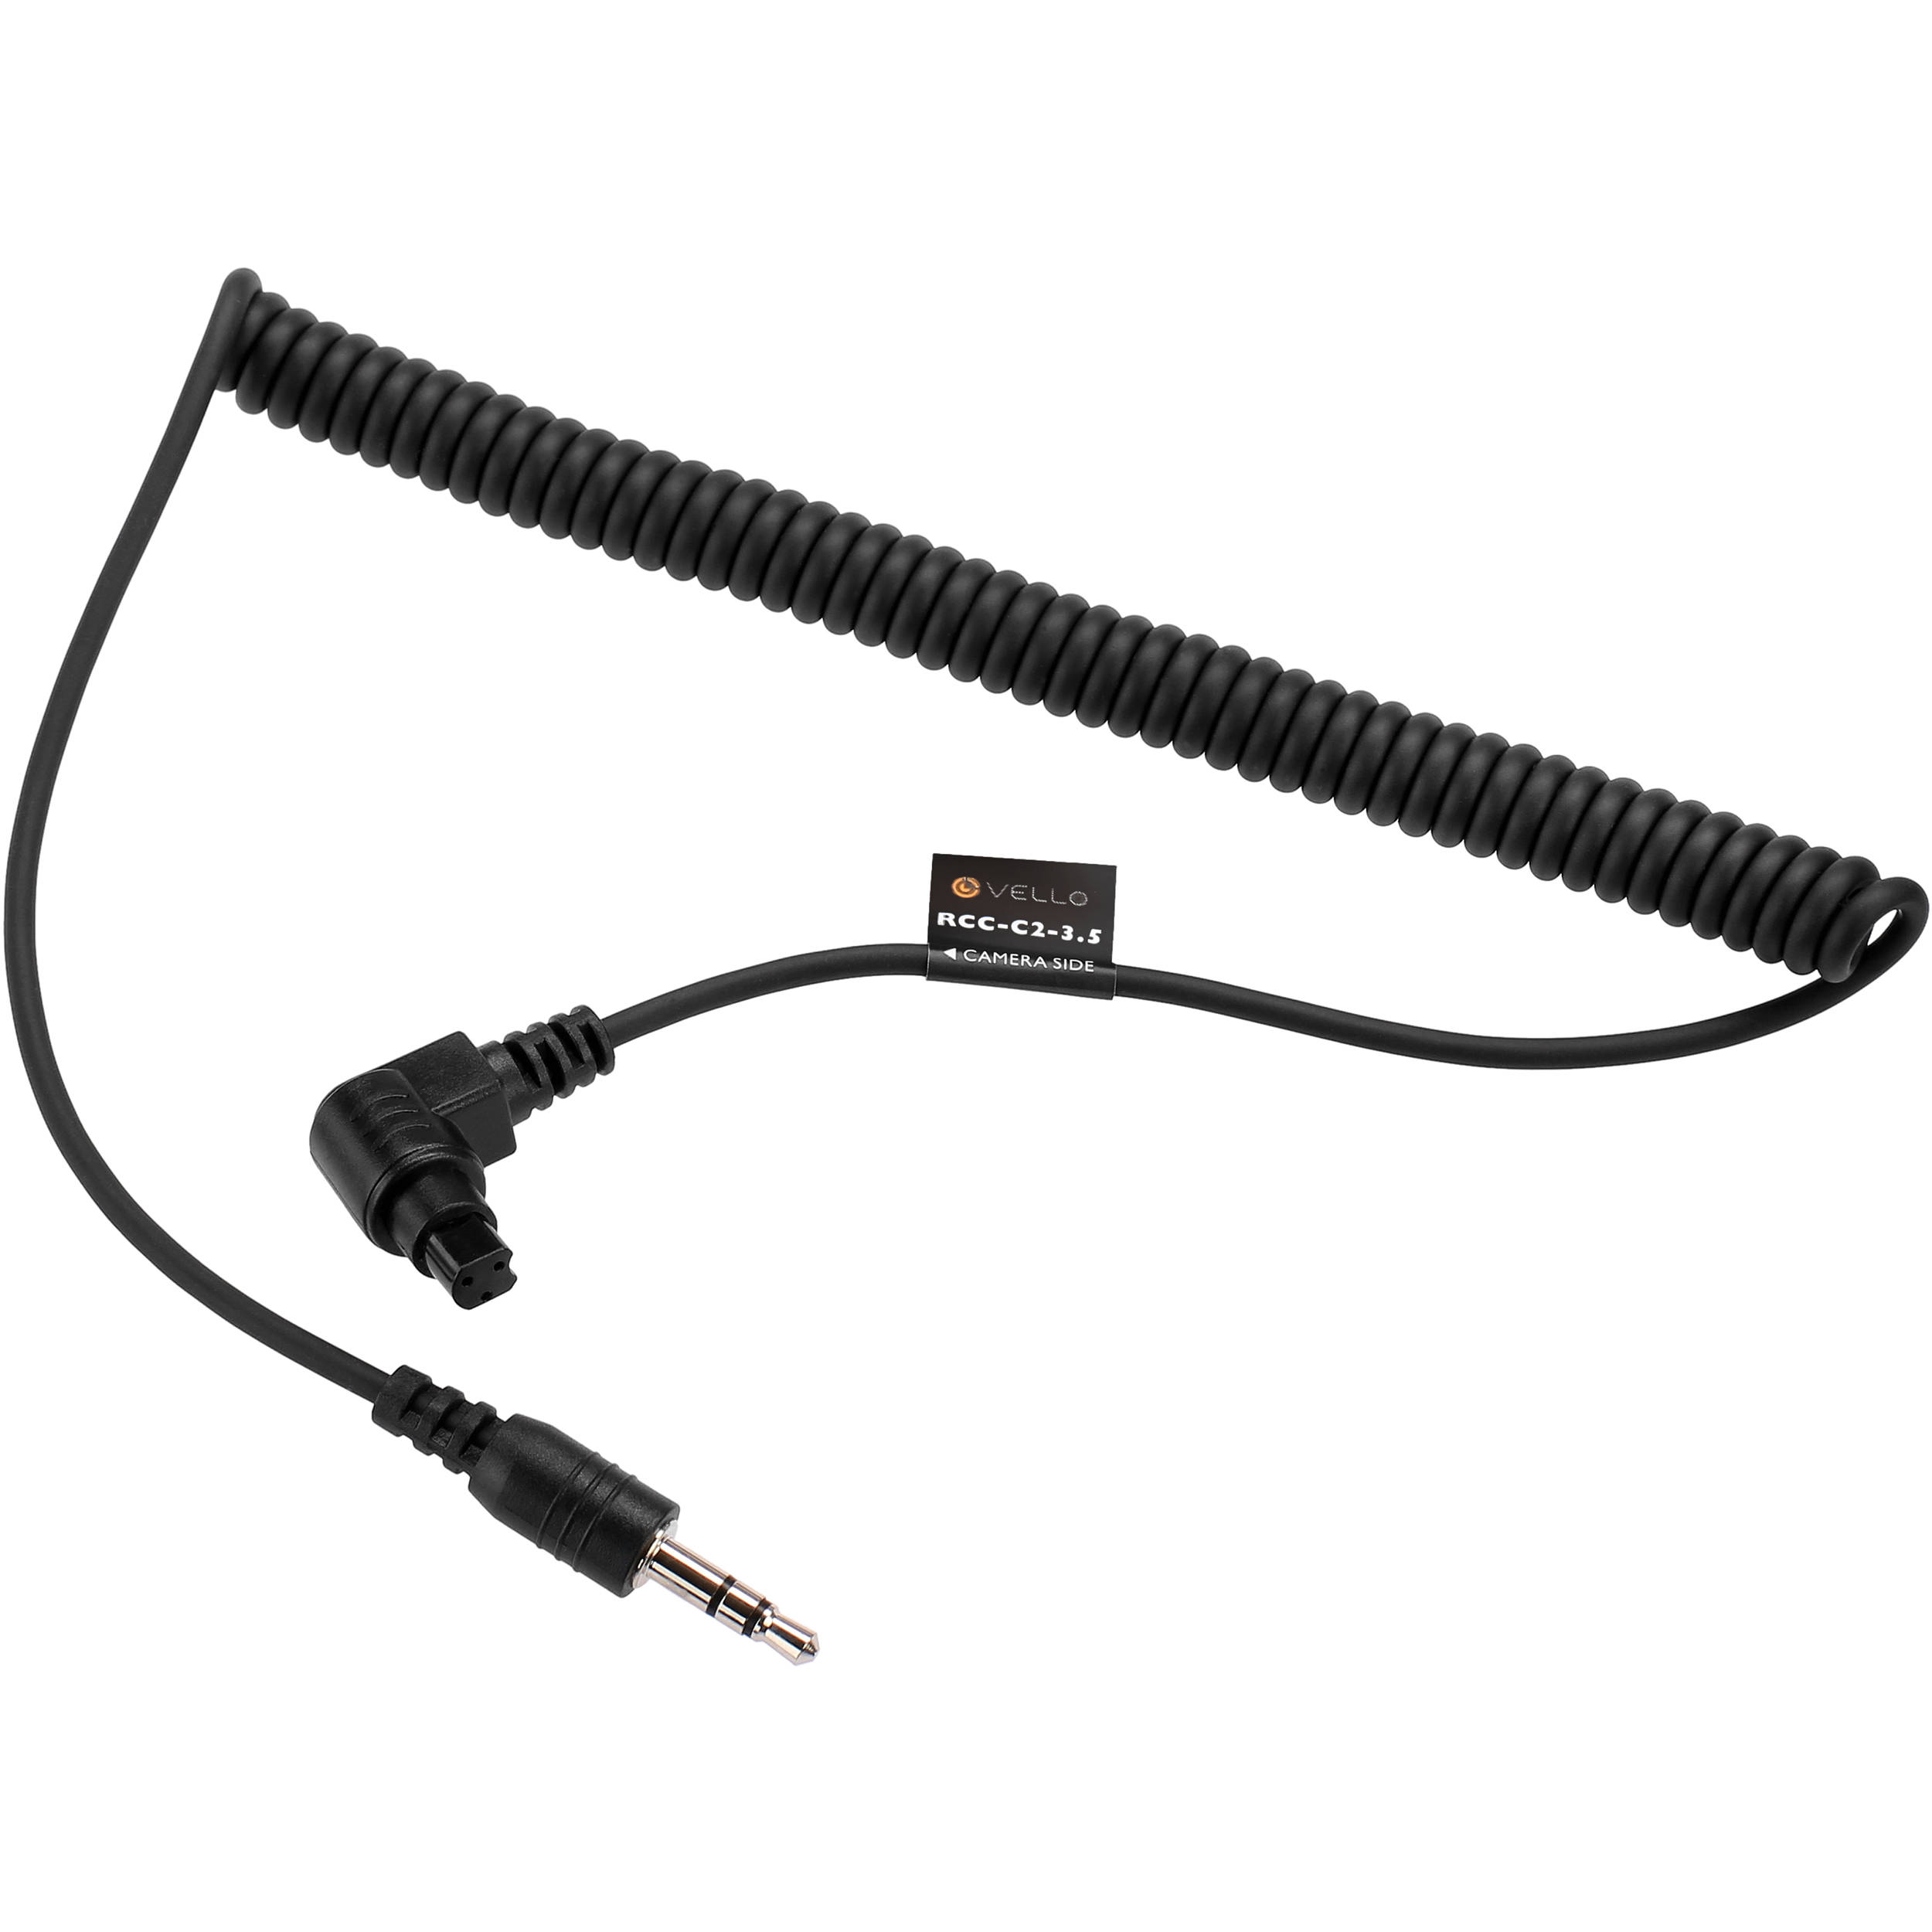 Vello 3.5mm Remote Shutter Release Cable for Can RCC-C2-3